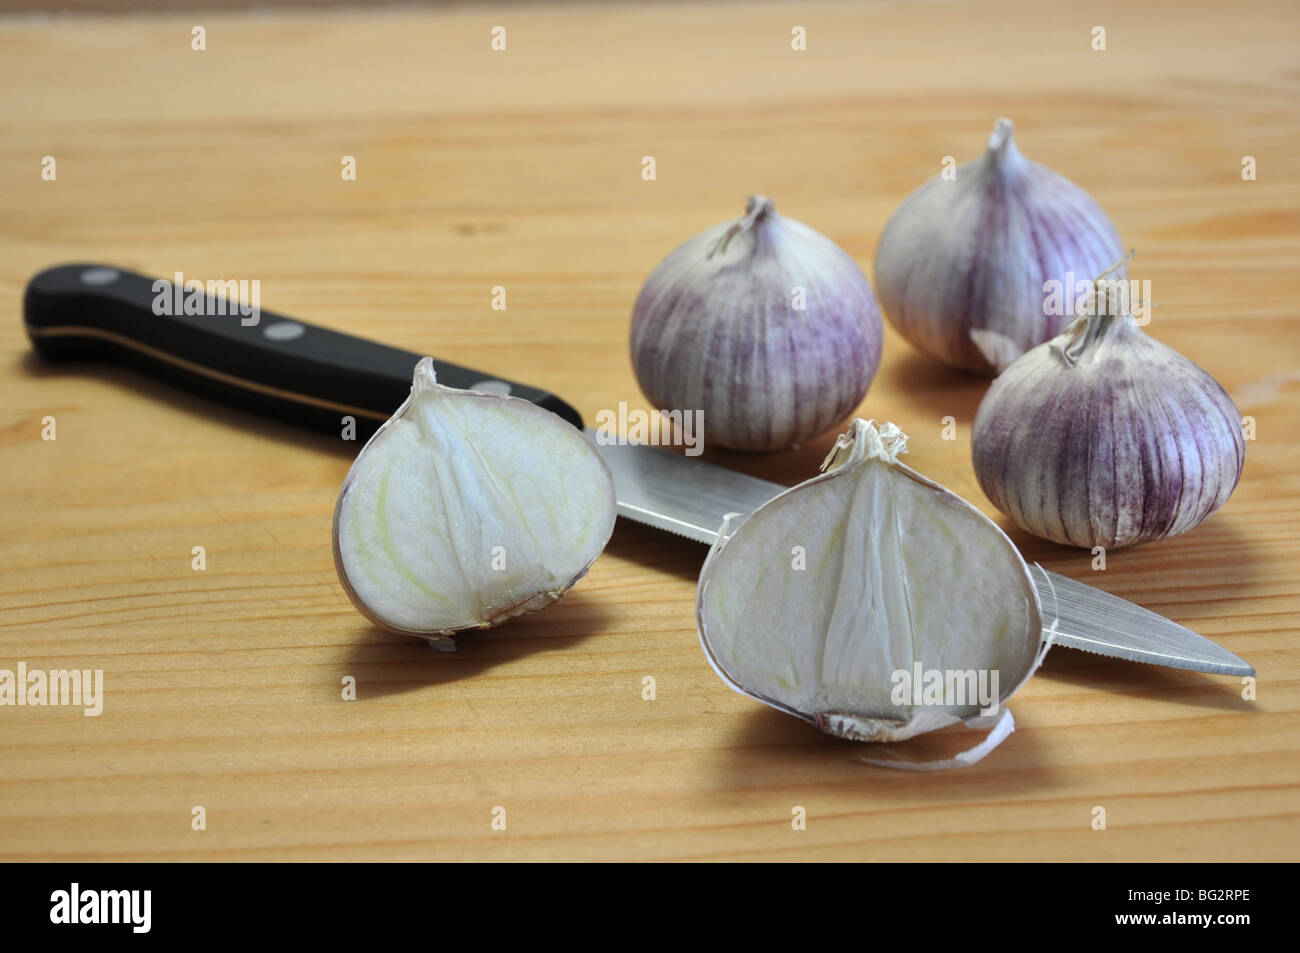 New exotic breed of garlic (Elephant garlic) that has only one clove! Several whole, some halves and knife on cutting - Stock Image